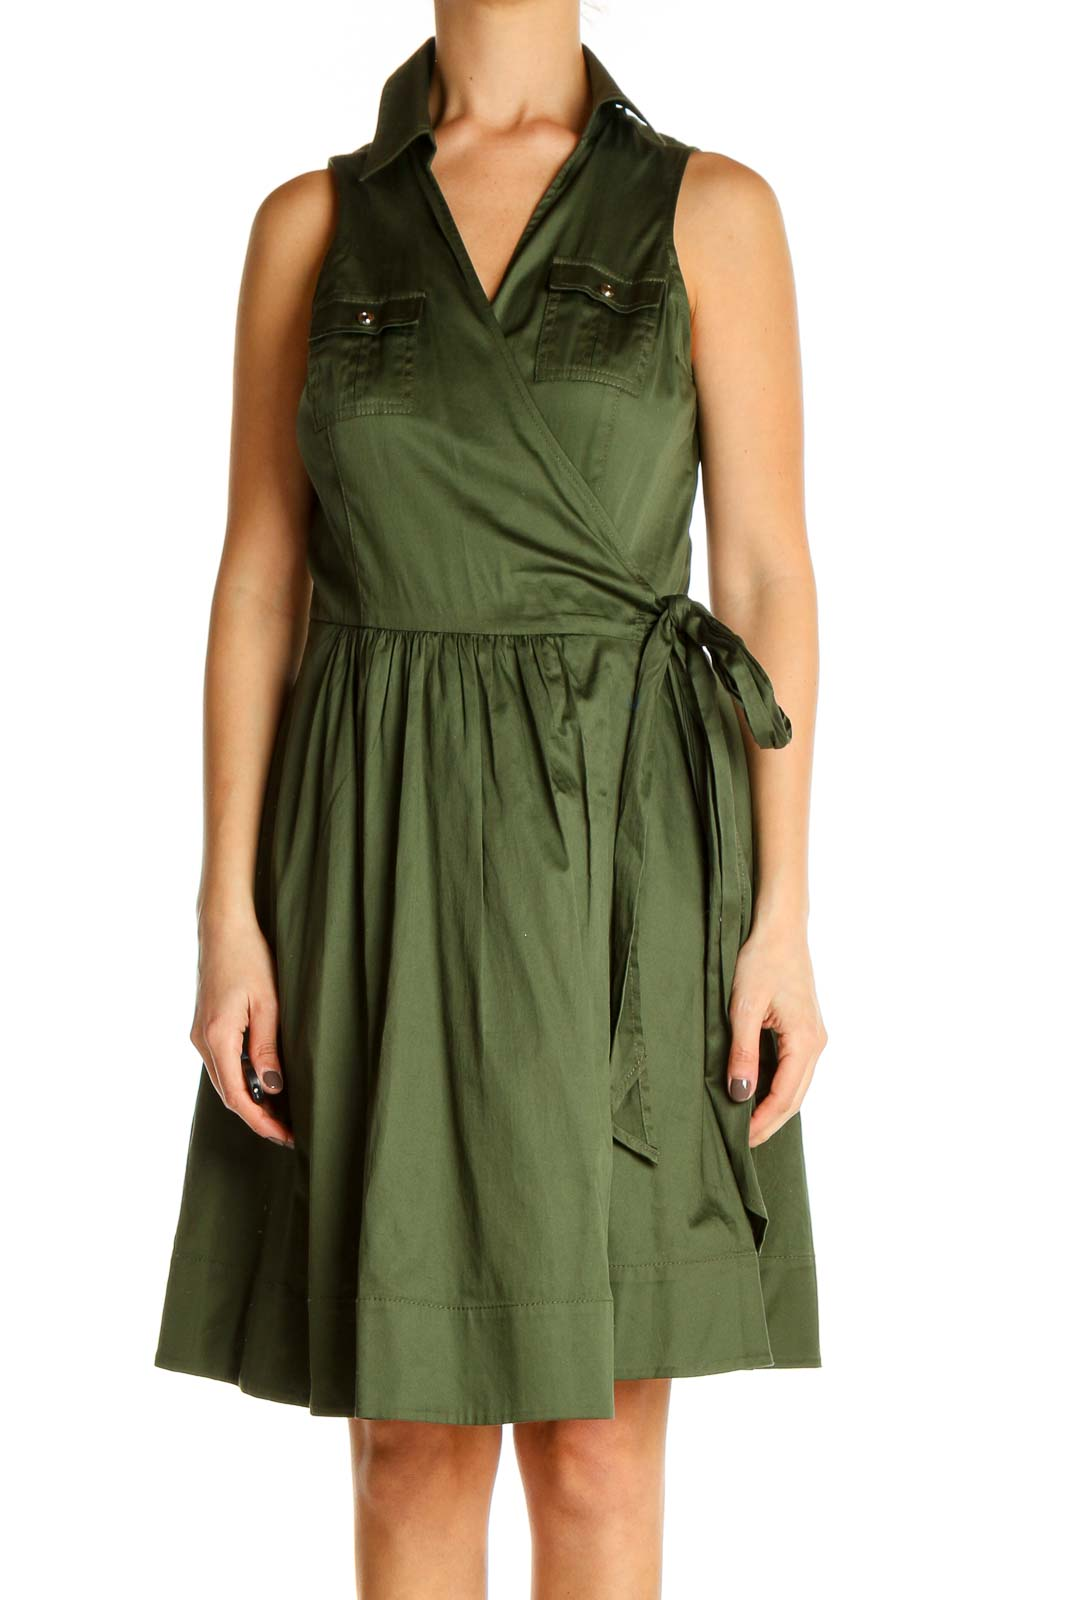 Green Solid Retro Fit & Flare Dress Front